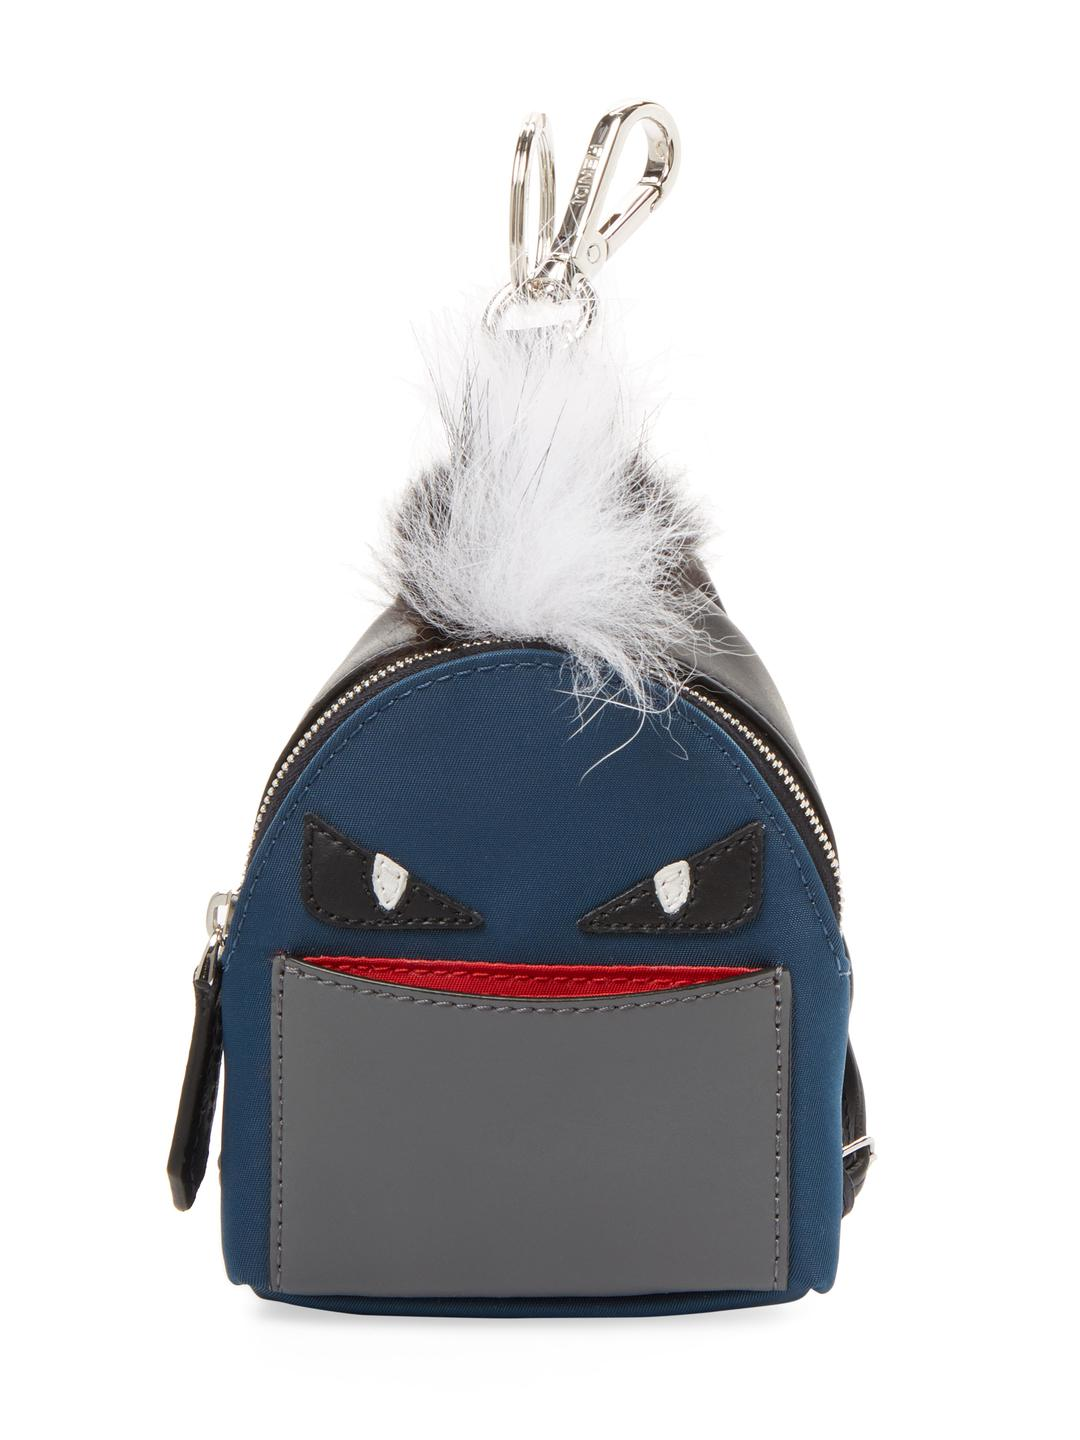 Lyst - Fendi Leather Patch Key Holder in Blue 2d55f4936ed91